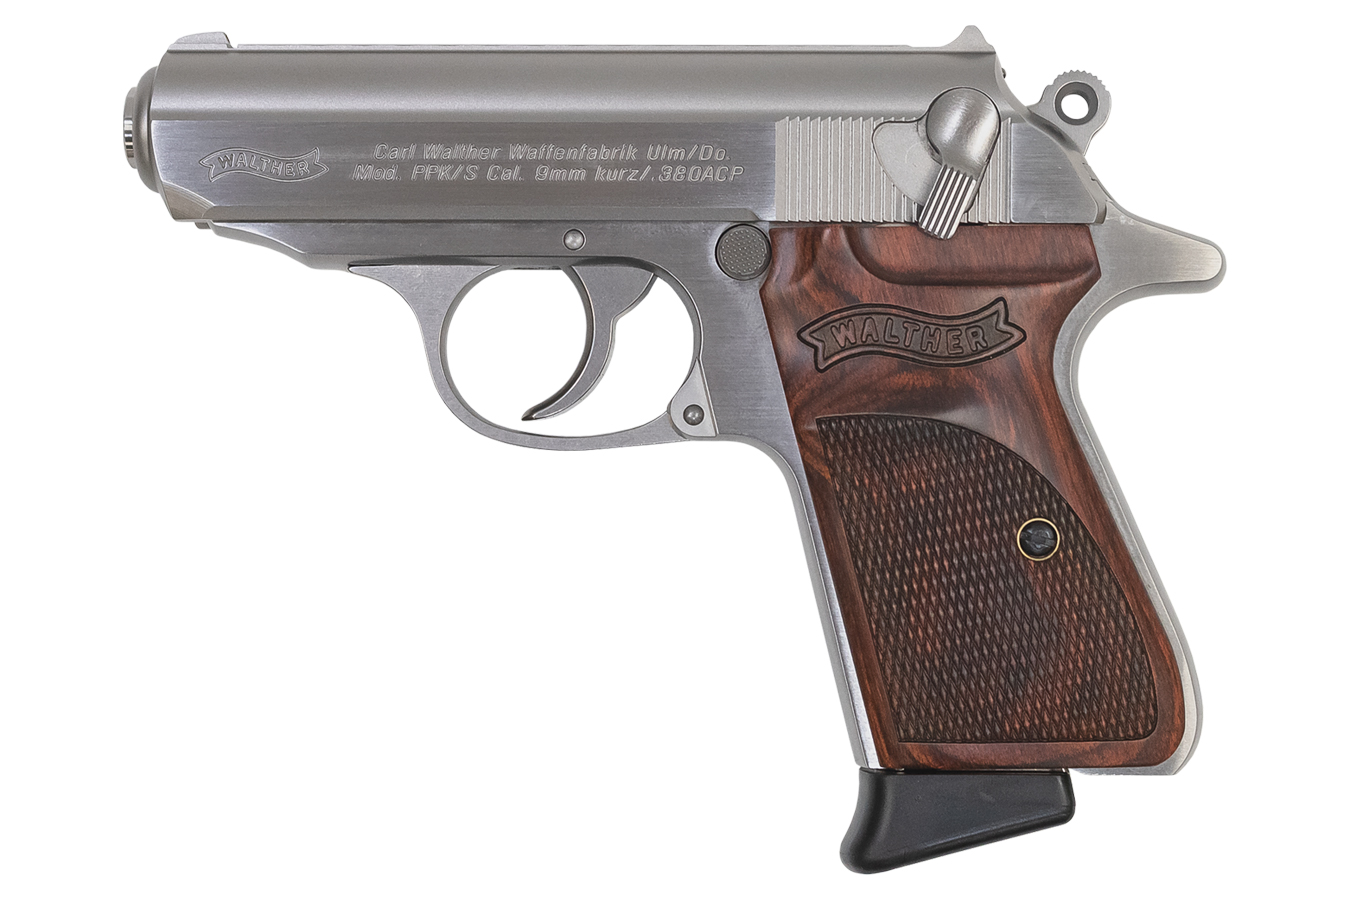 PPK/S 380 ACP Stainless Carry Conceal TALO Exclusive with Wood Grips